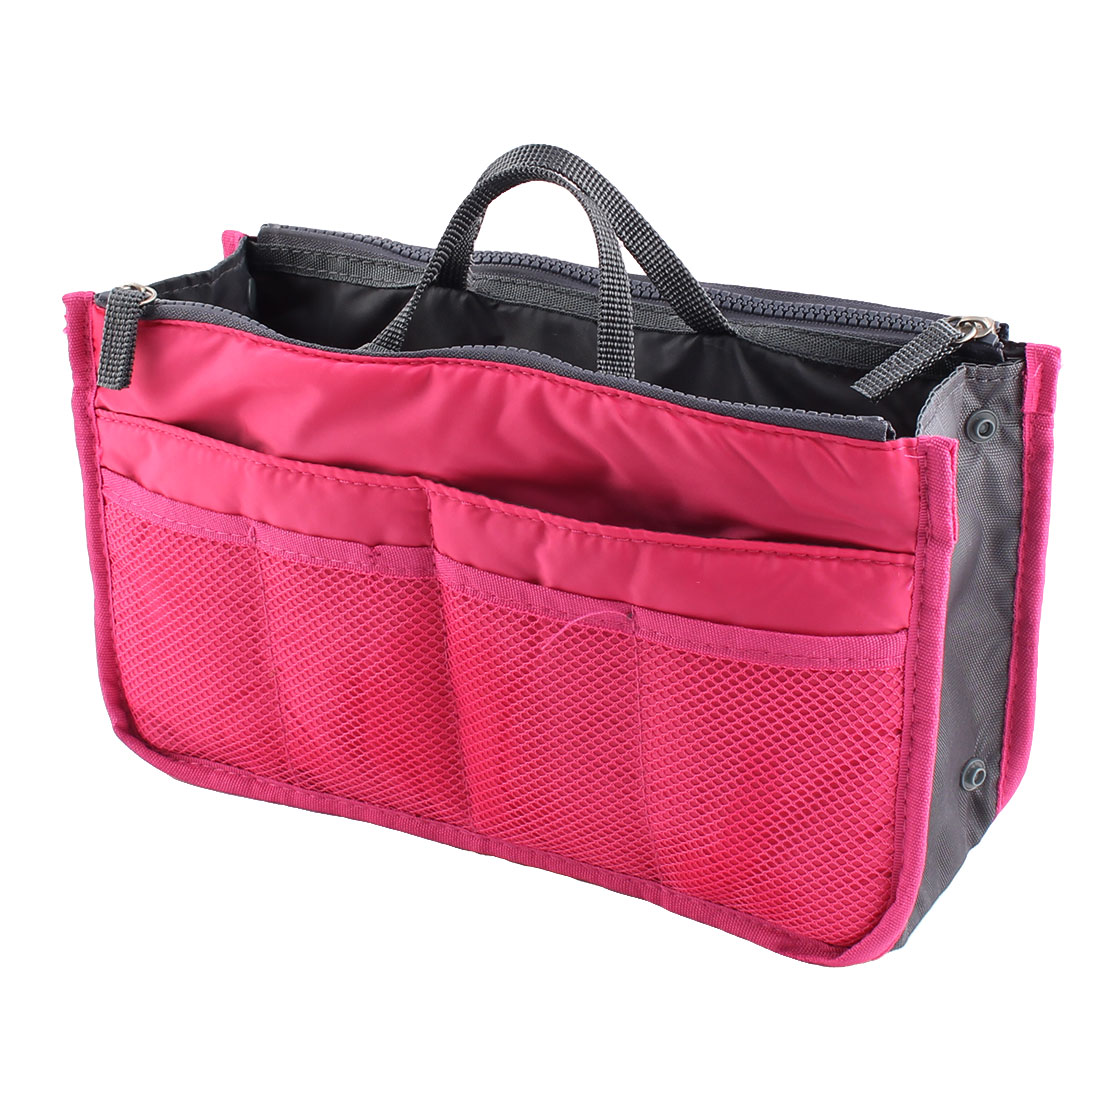 Portable Multi-functional Storage Bag Handbag Organizer Holder Container Fuchsia